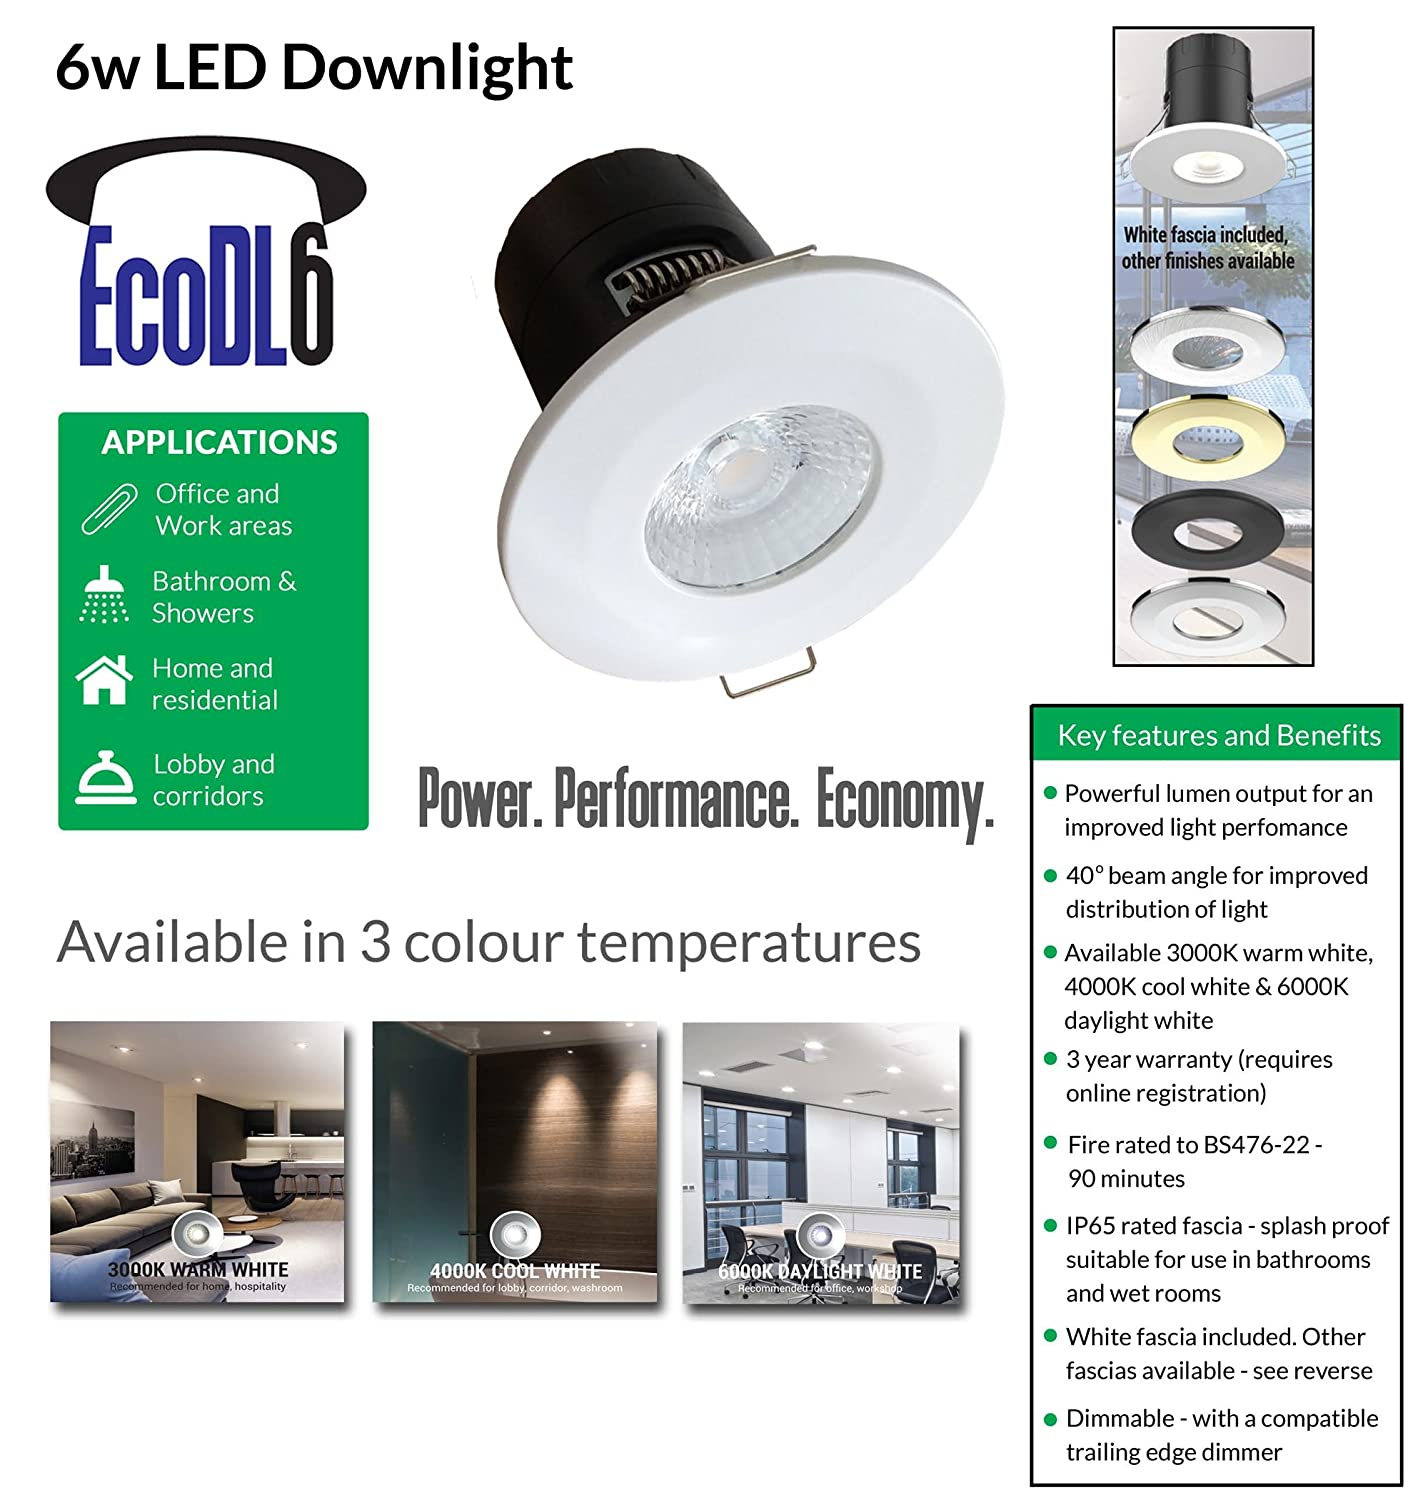 55mm Cutout. ECO DL6-6w LED Downlight 610 Lumen 40 Degree Beam Angle Dimmable IP65 Fire Rated Fascia 4000k Cool White Chrome Bezel